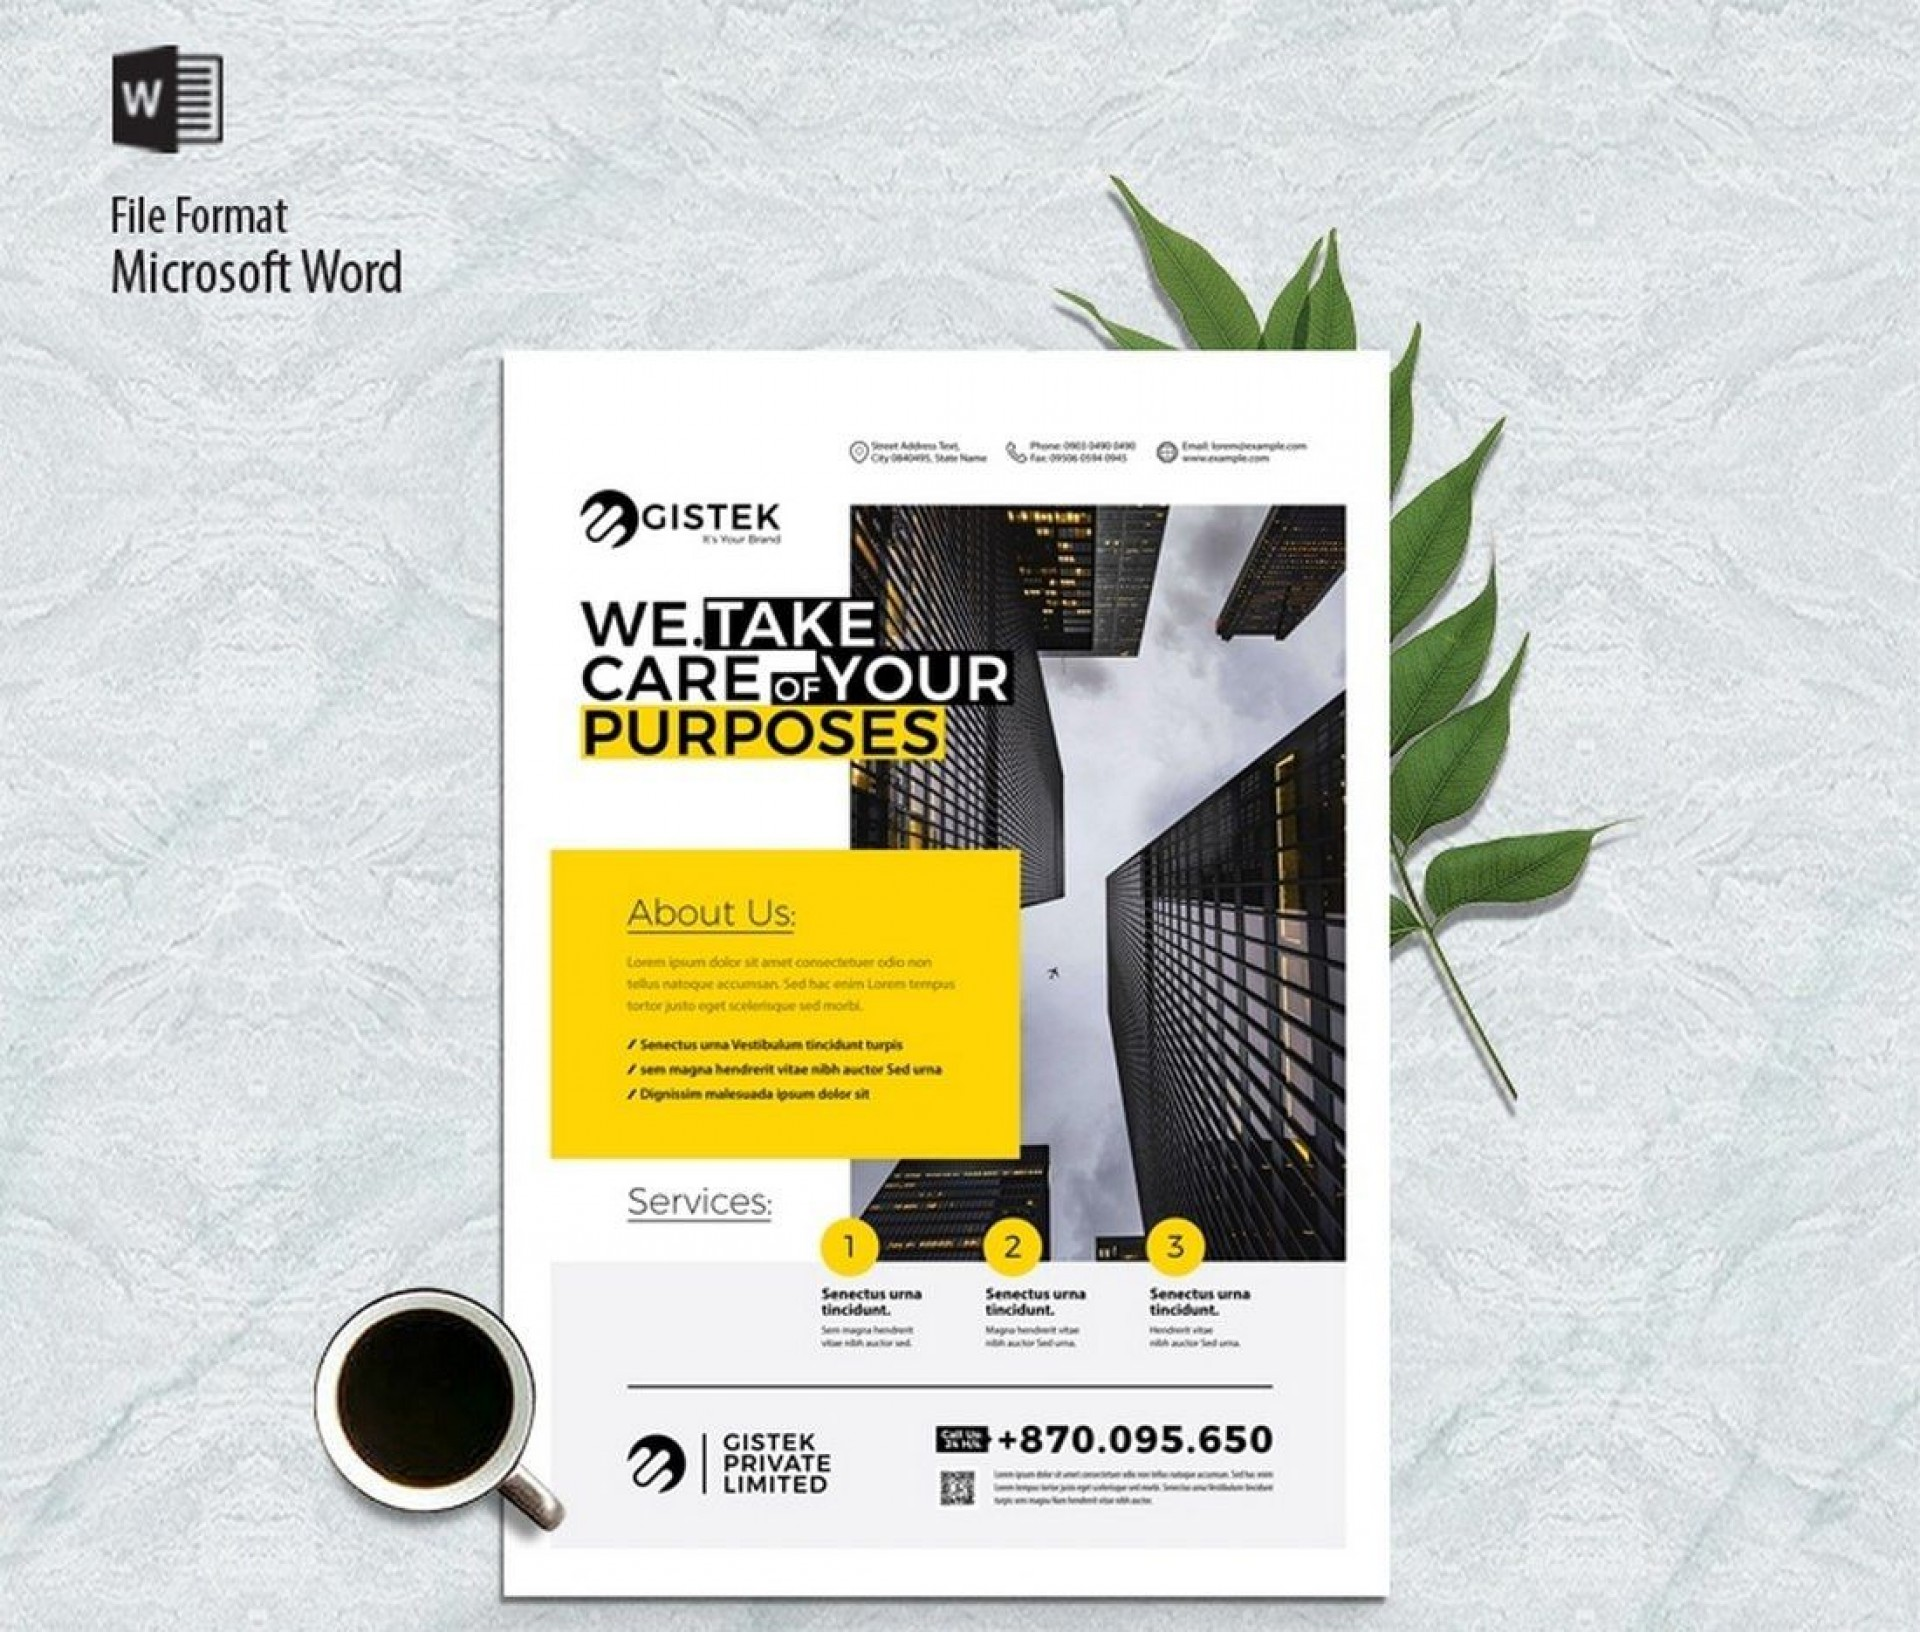 007 Stunning Template Brochure For Microsoft Word Free Sample  Flyer Bowling Tri Fold 20101920